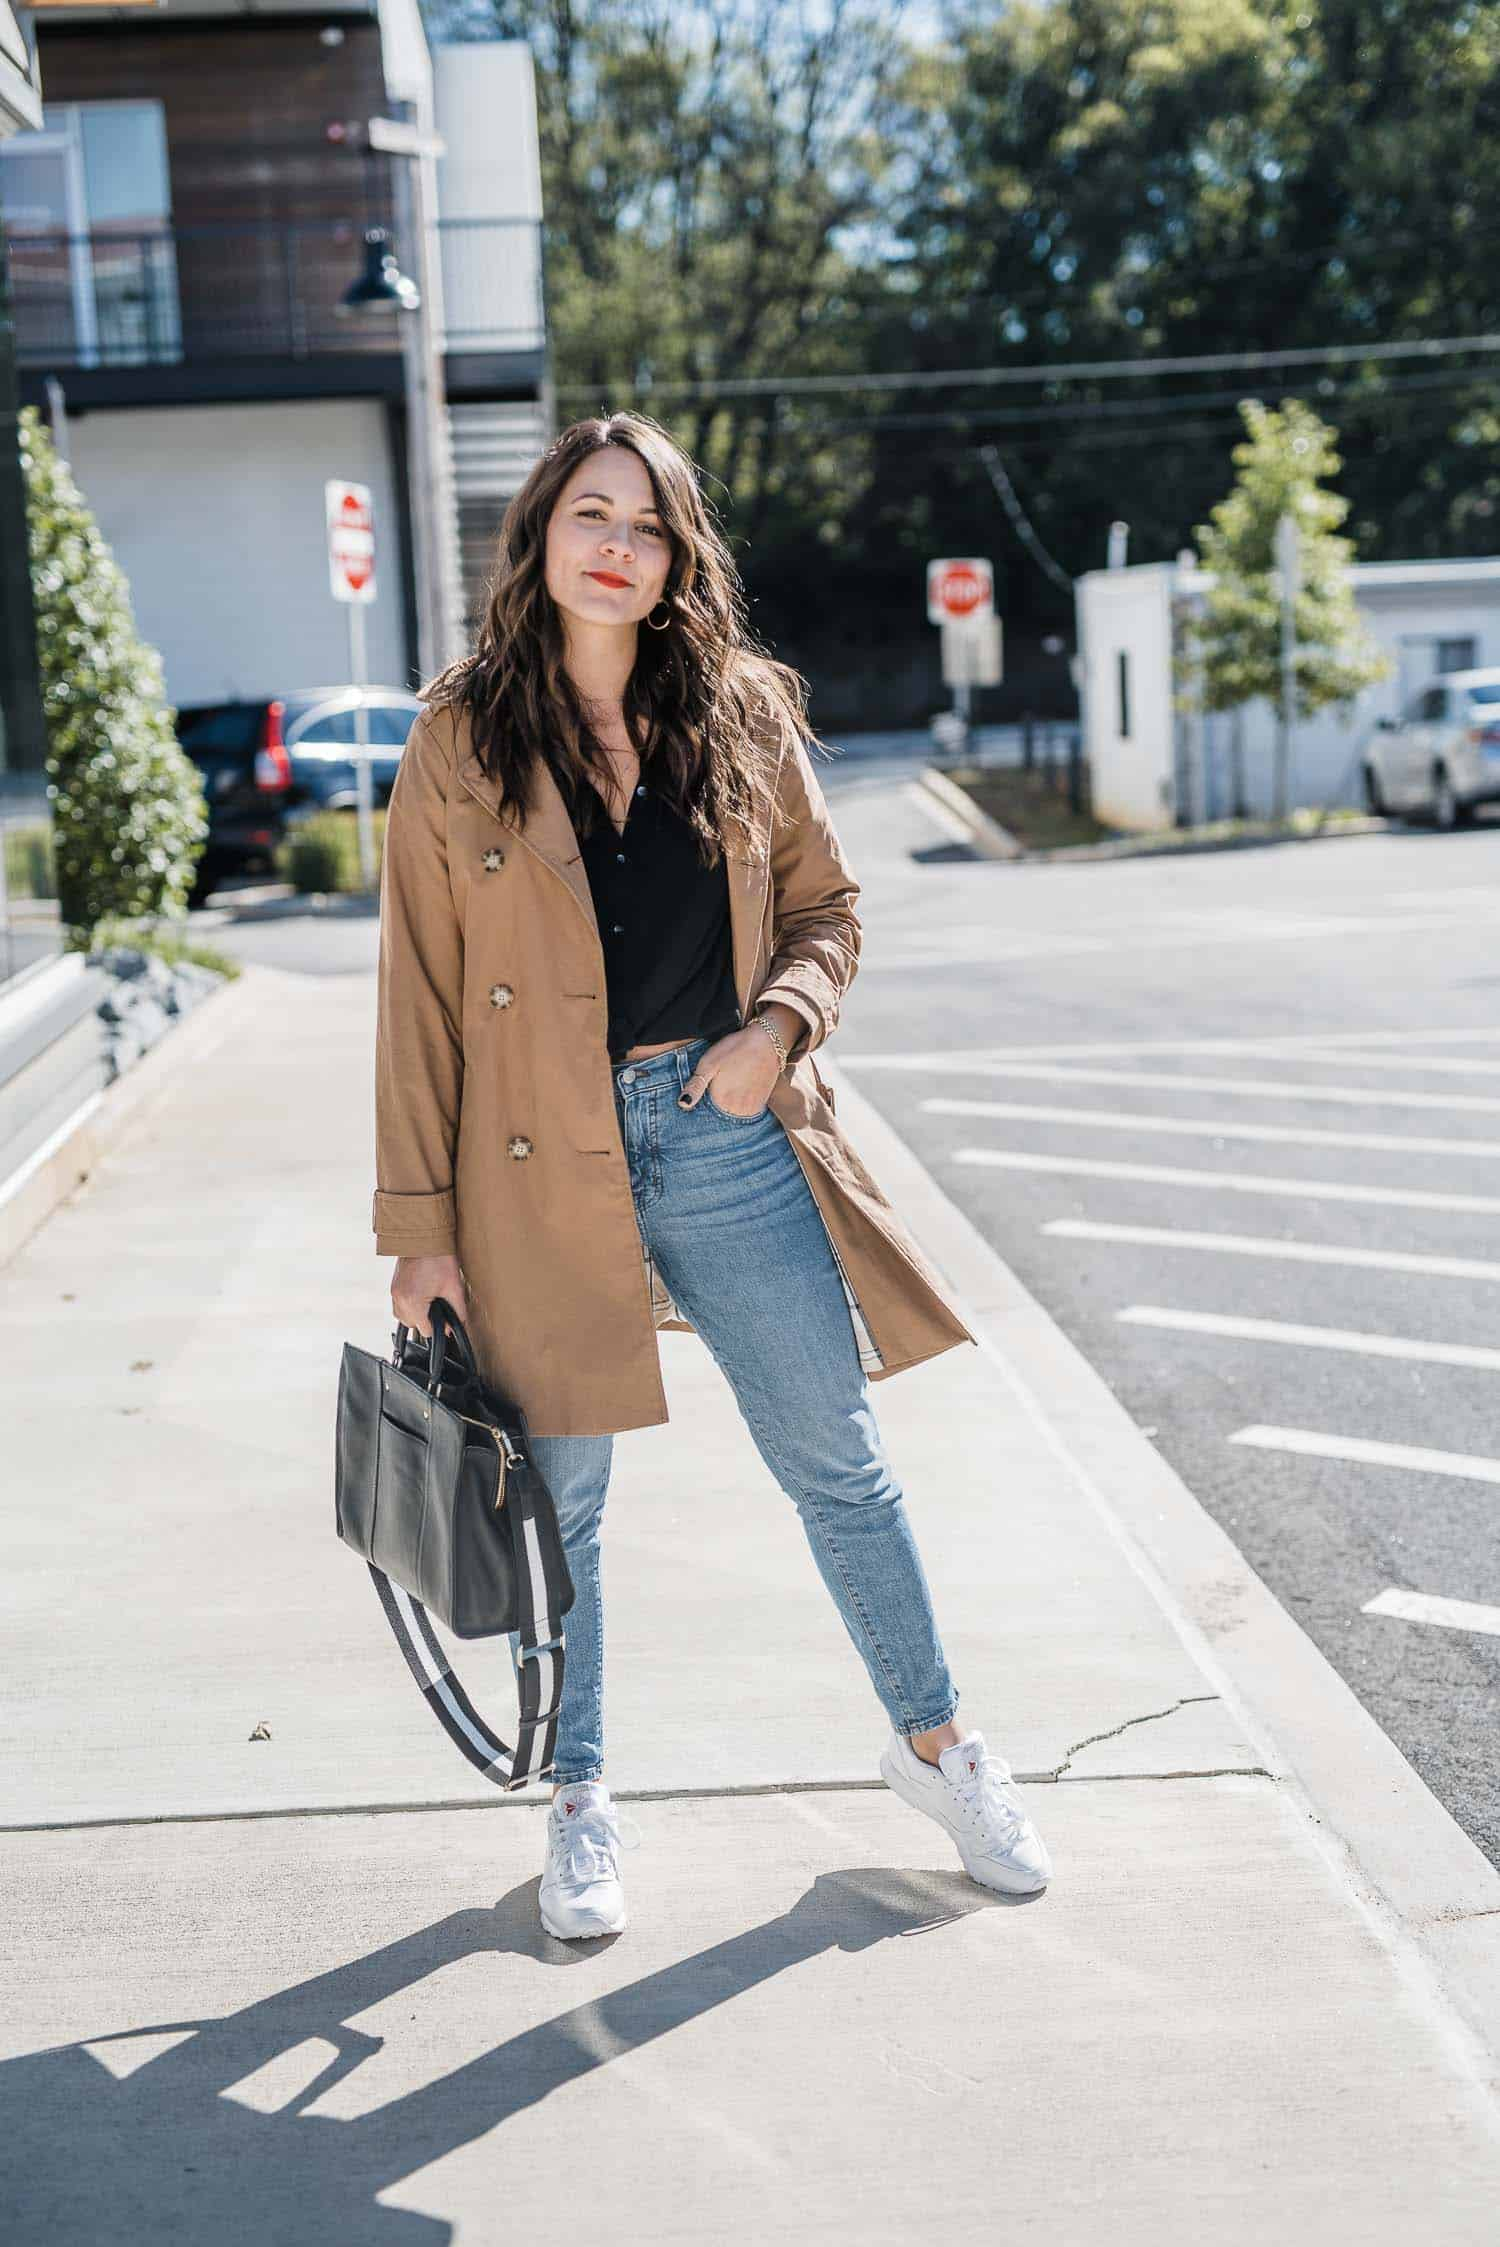 Abercrombie & Fitch Trench • Madewell Jeans • Reebok Sneakers • Madewell Blouse • Radley London Bag